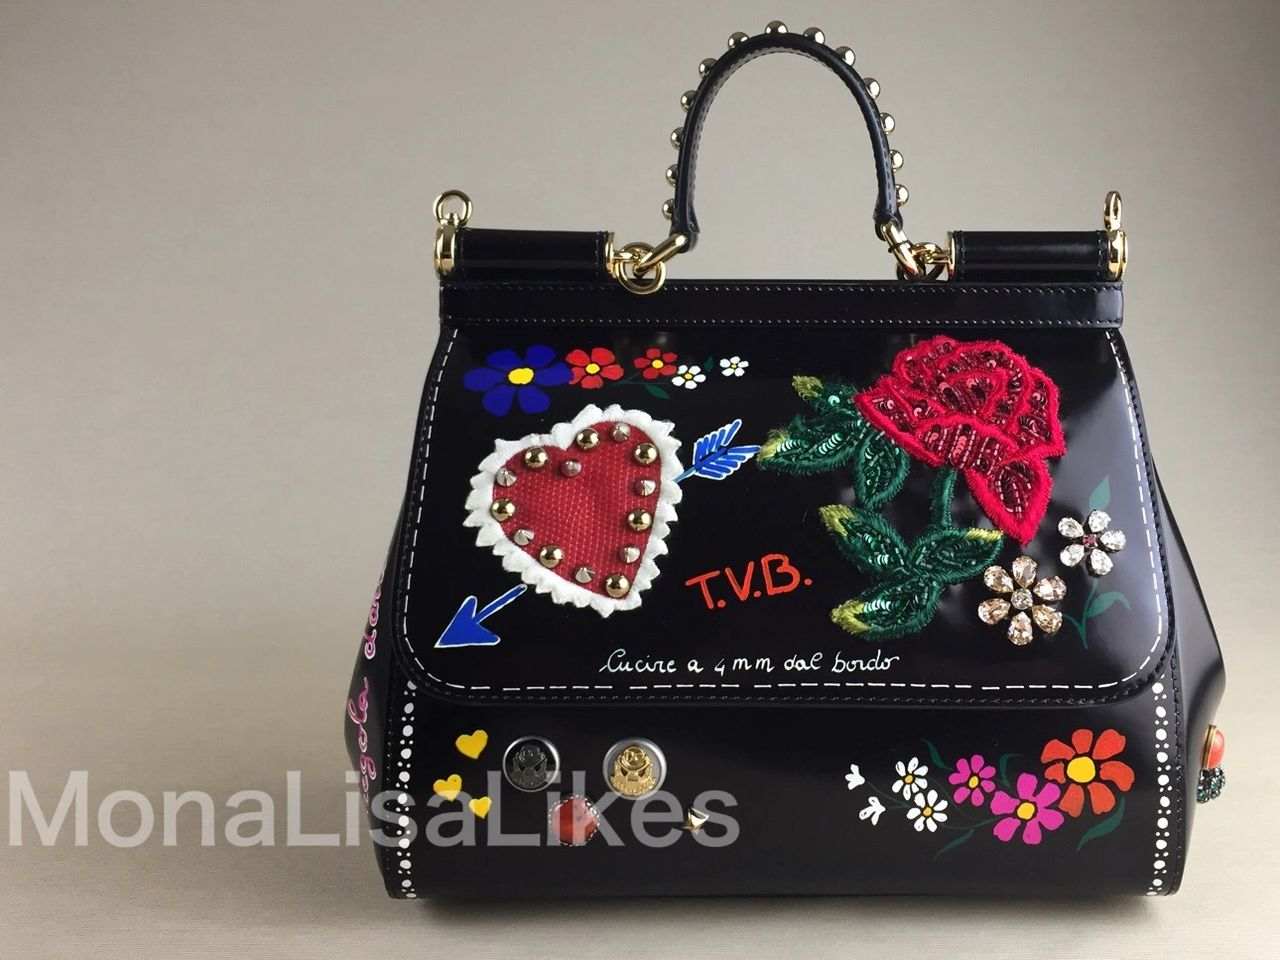 DOLCE & GABBANA Miss Sicily bag with graffiti print and heart embroidery from Fall Winter 2018-2019 Collection